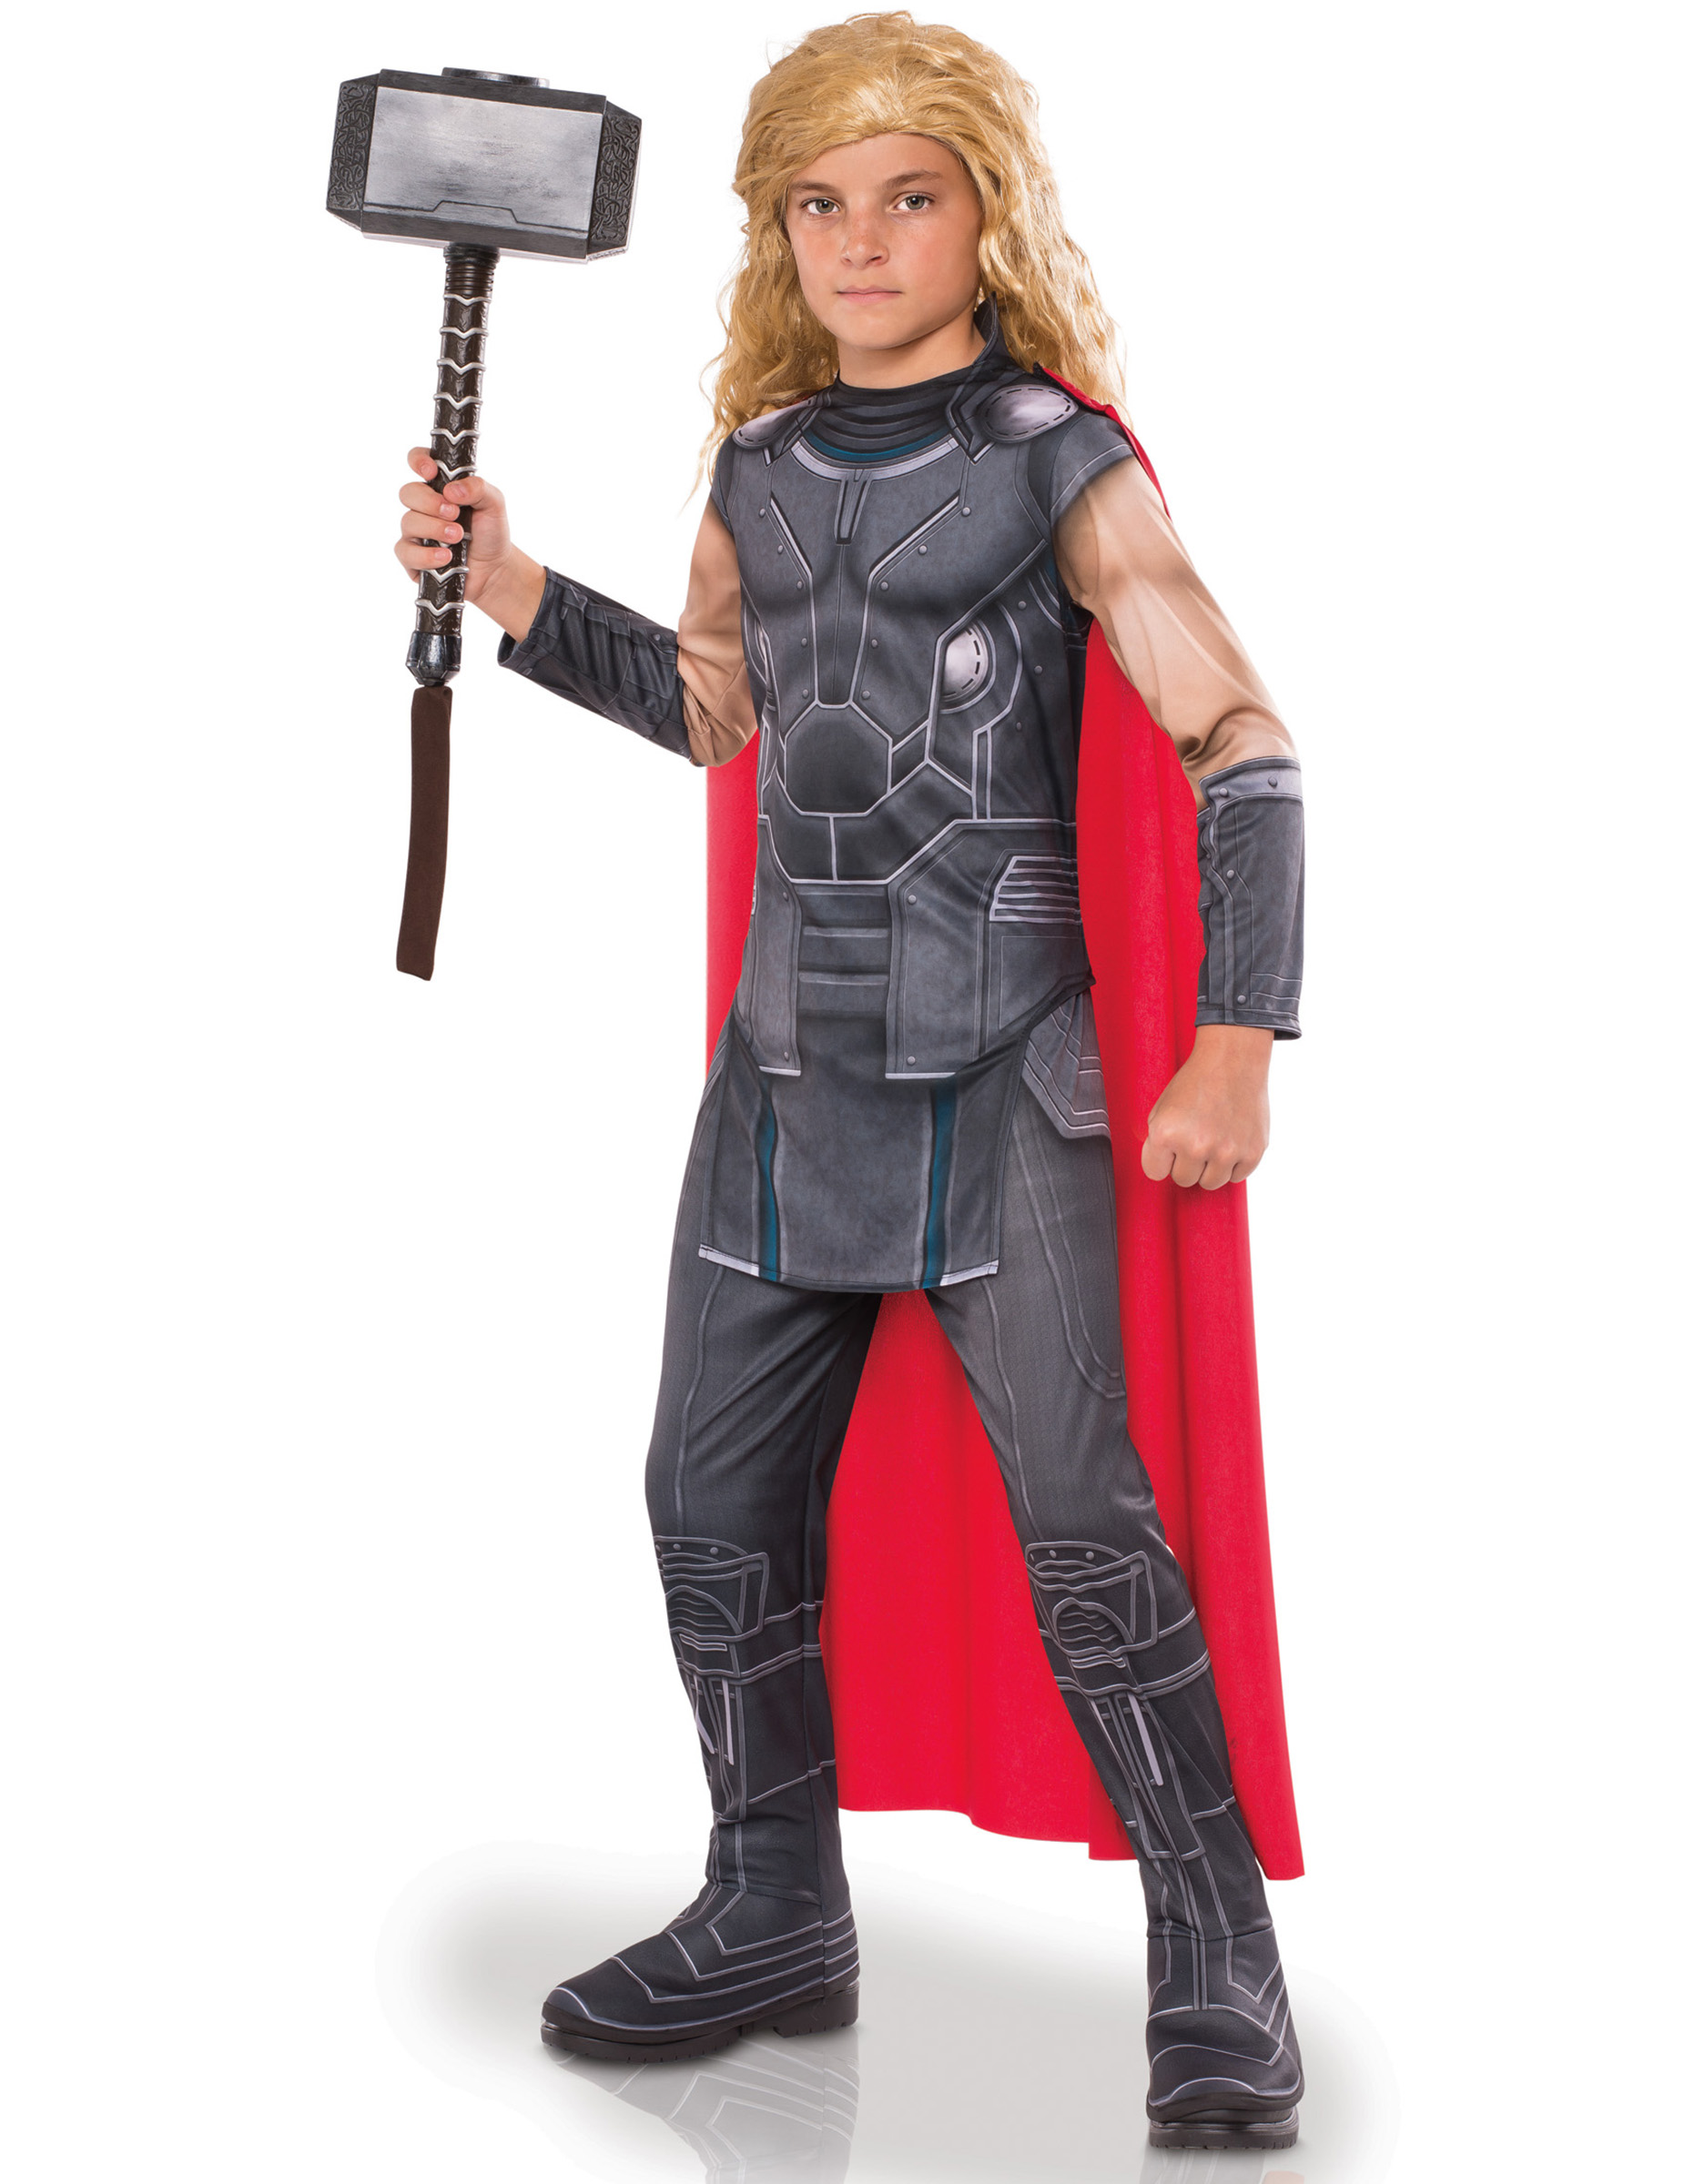 Shop for marvel thor costume online at Target. Free shipping on purchases over $35 and save 5% every day with your Target REDcard.